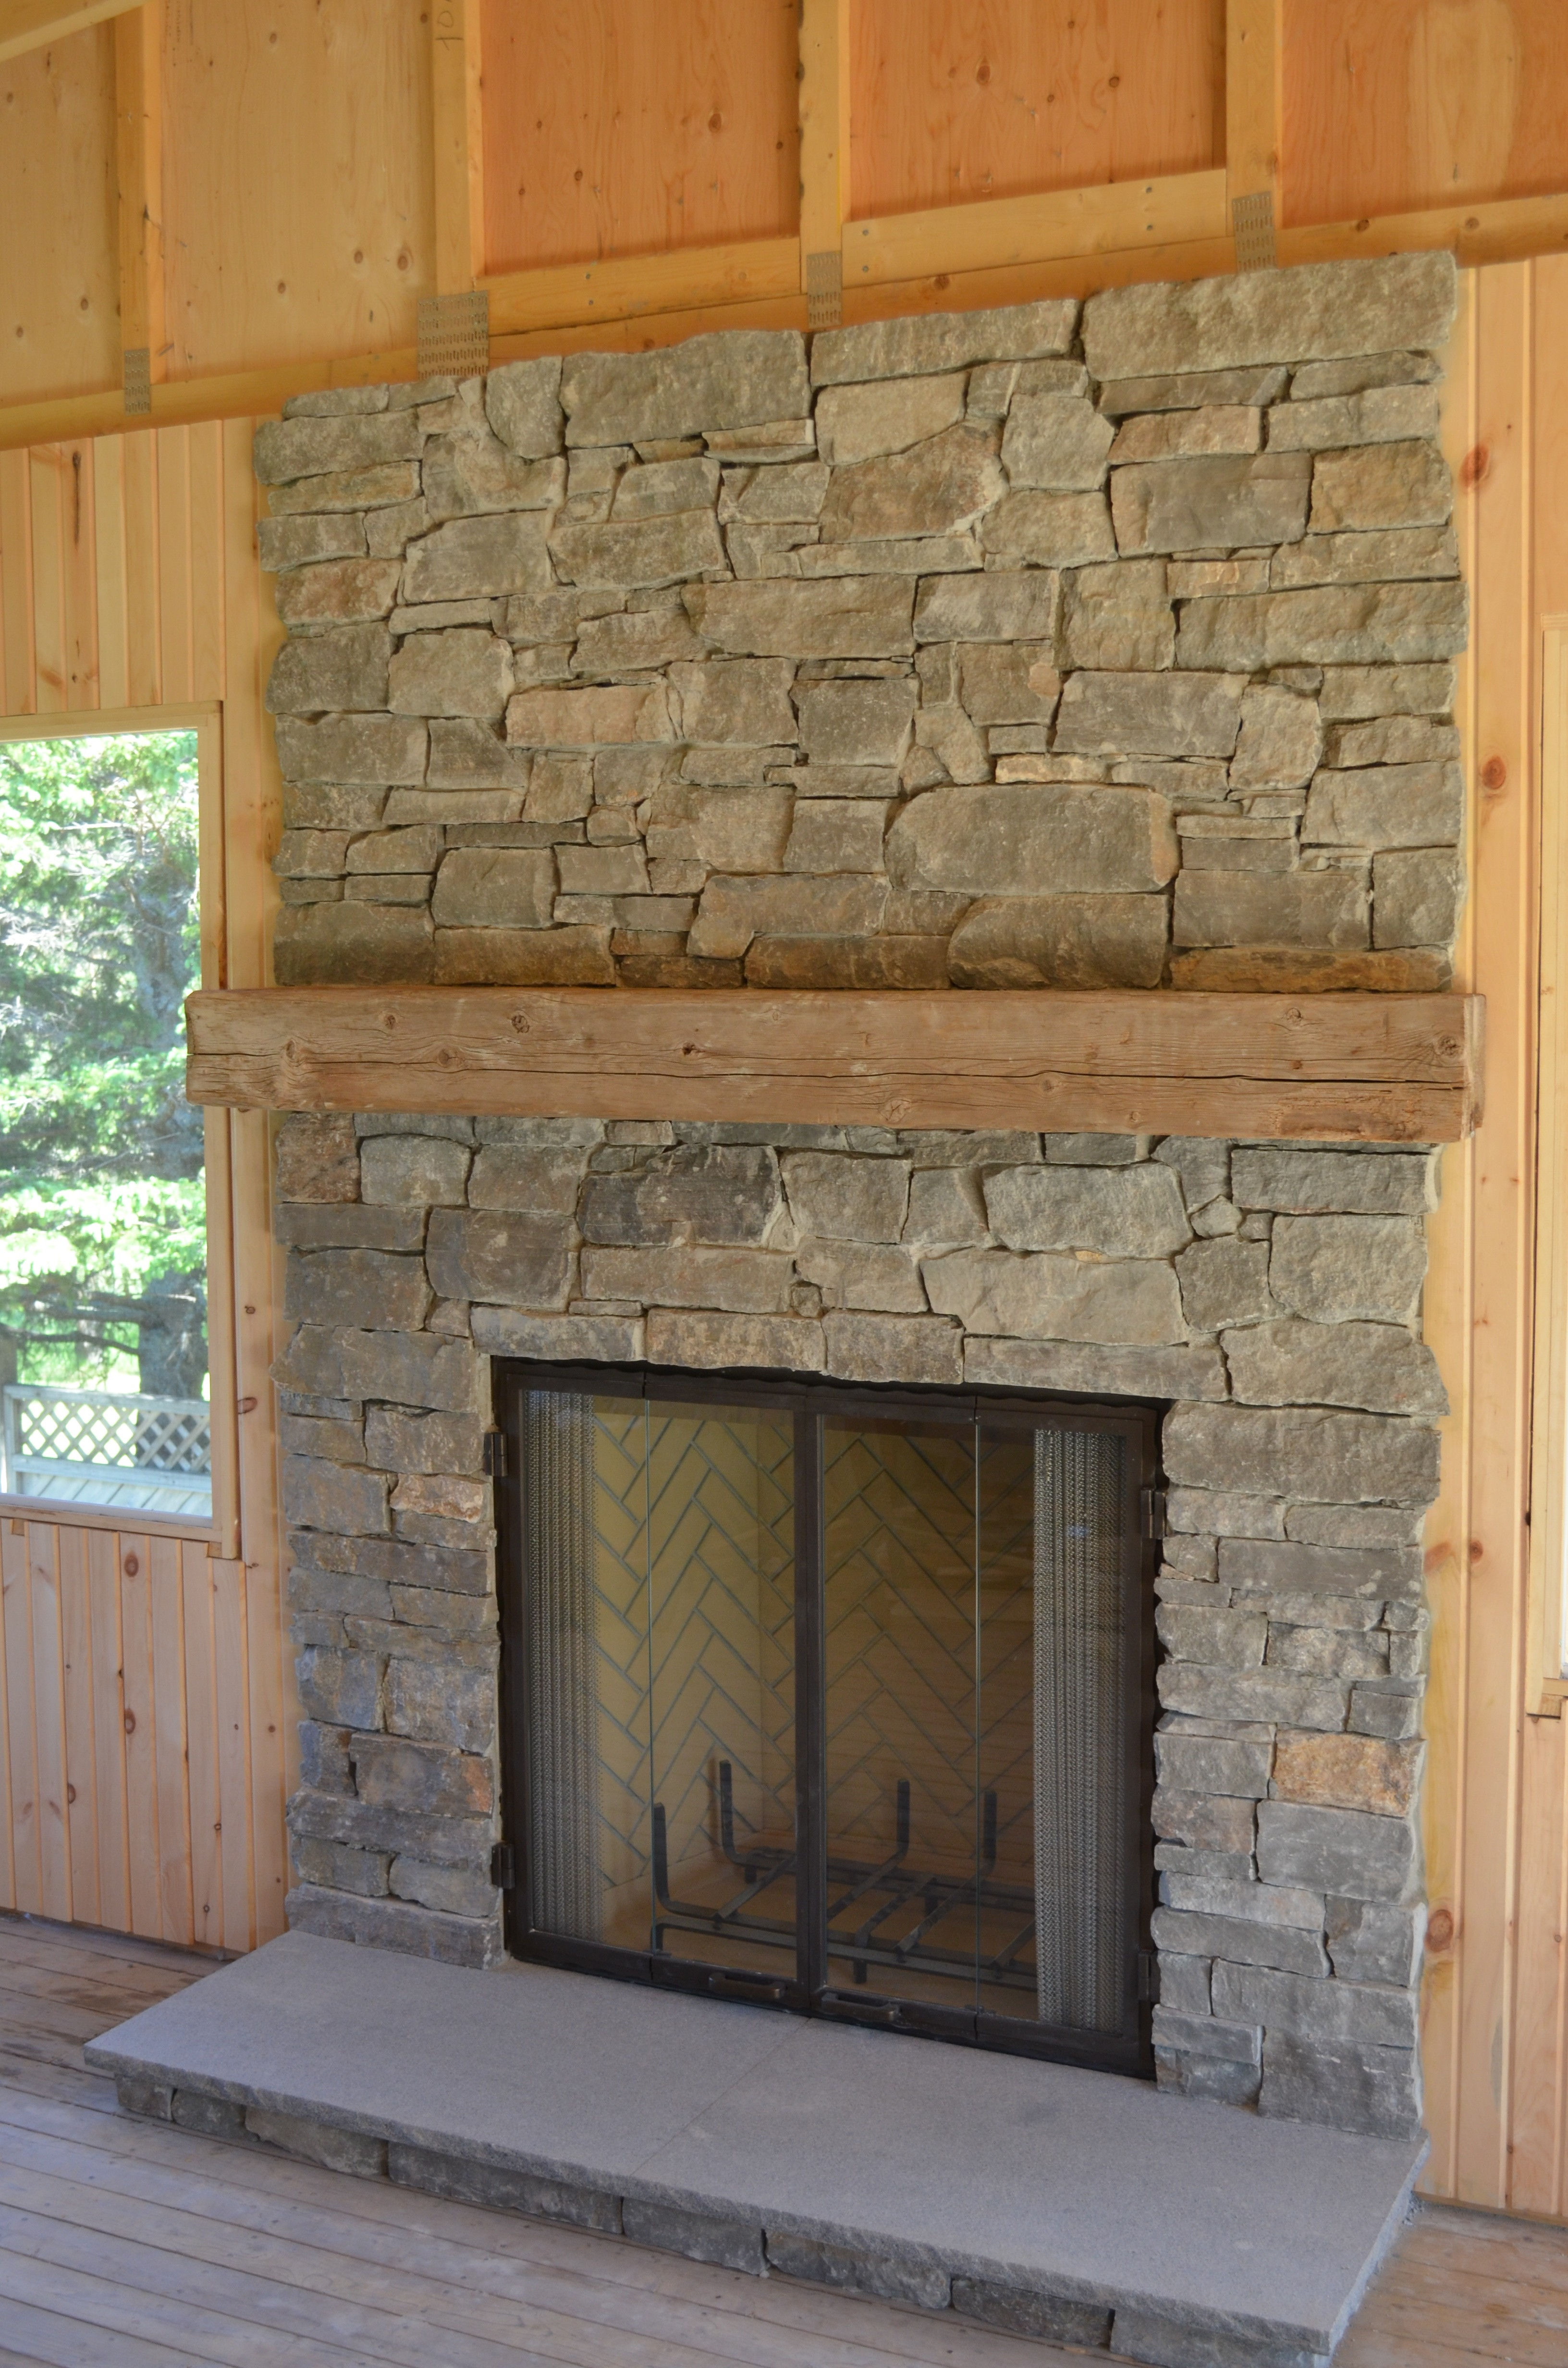 overmantels fireplaces mantels over fireplace limestone overmantel upper surrounds classicenglish stone marble cast mantel